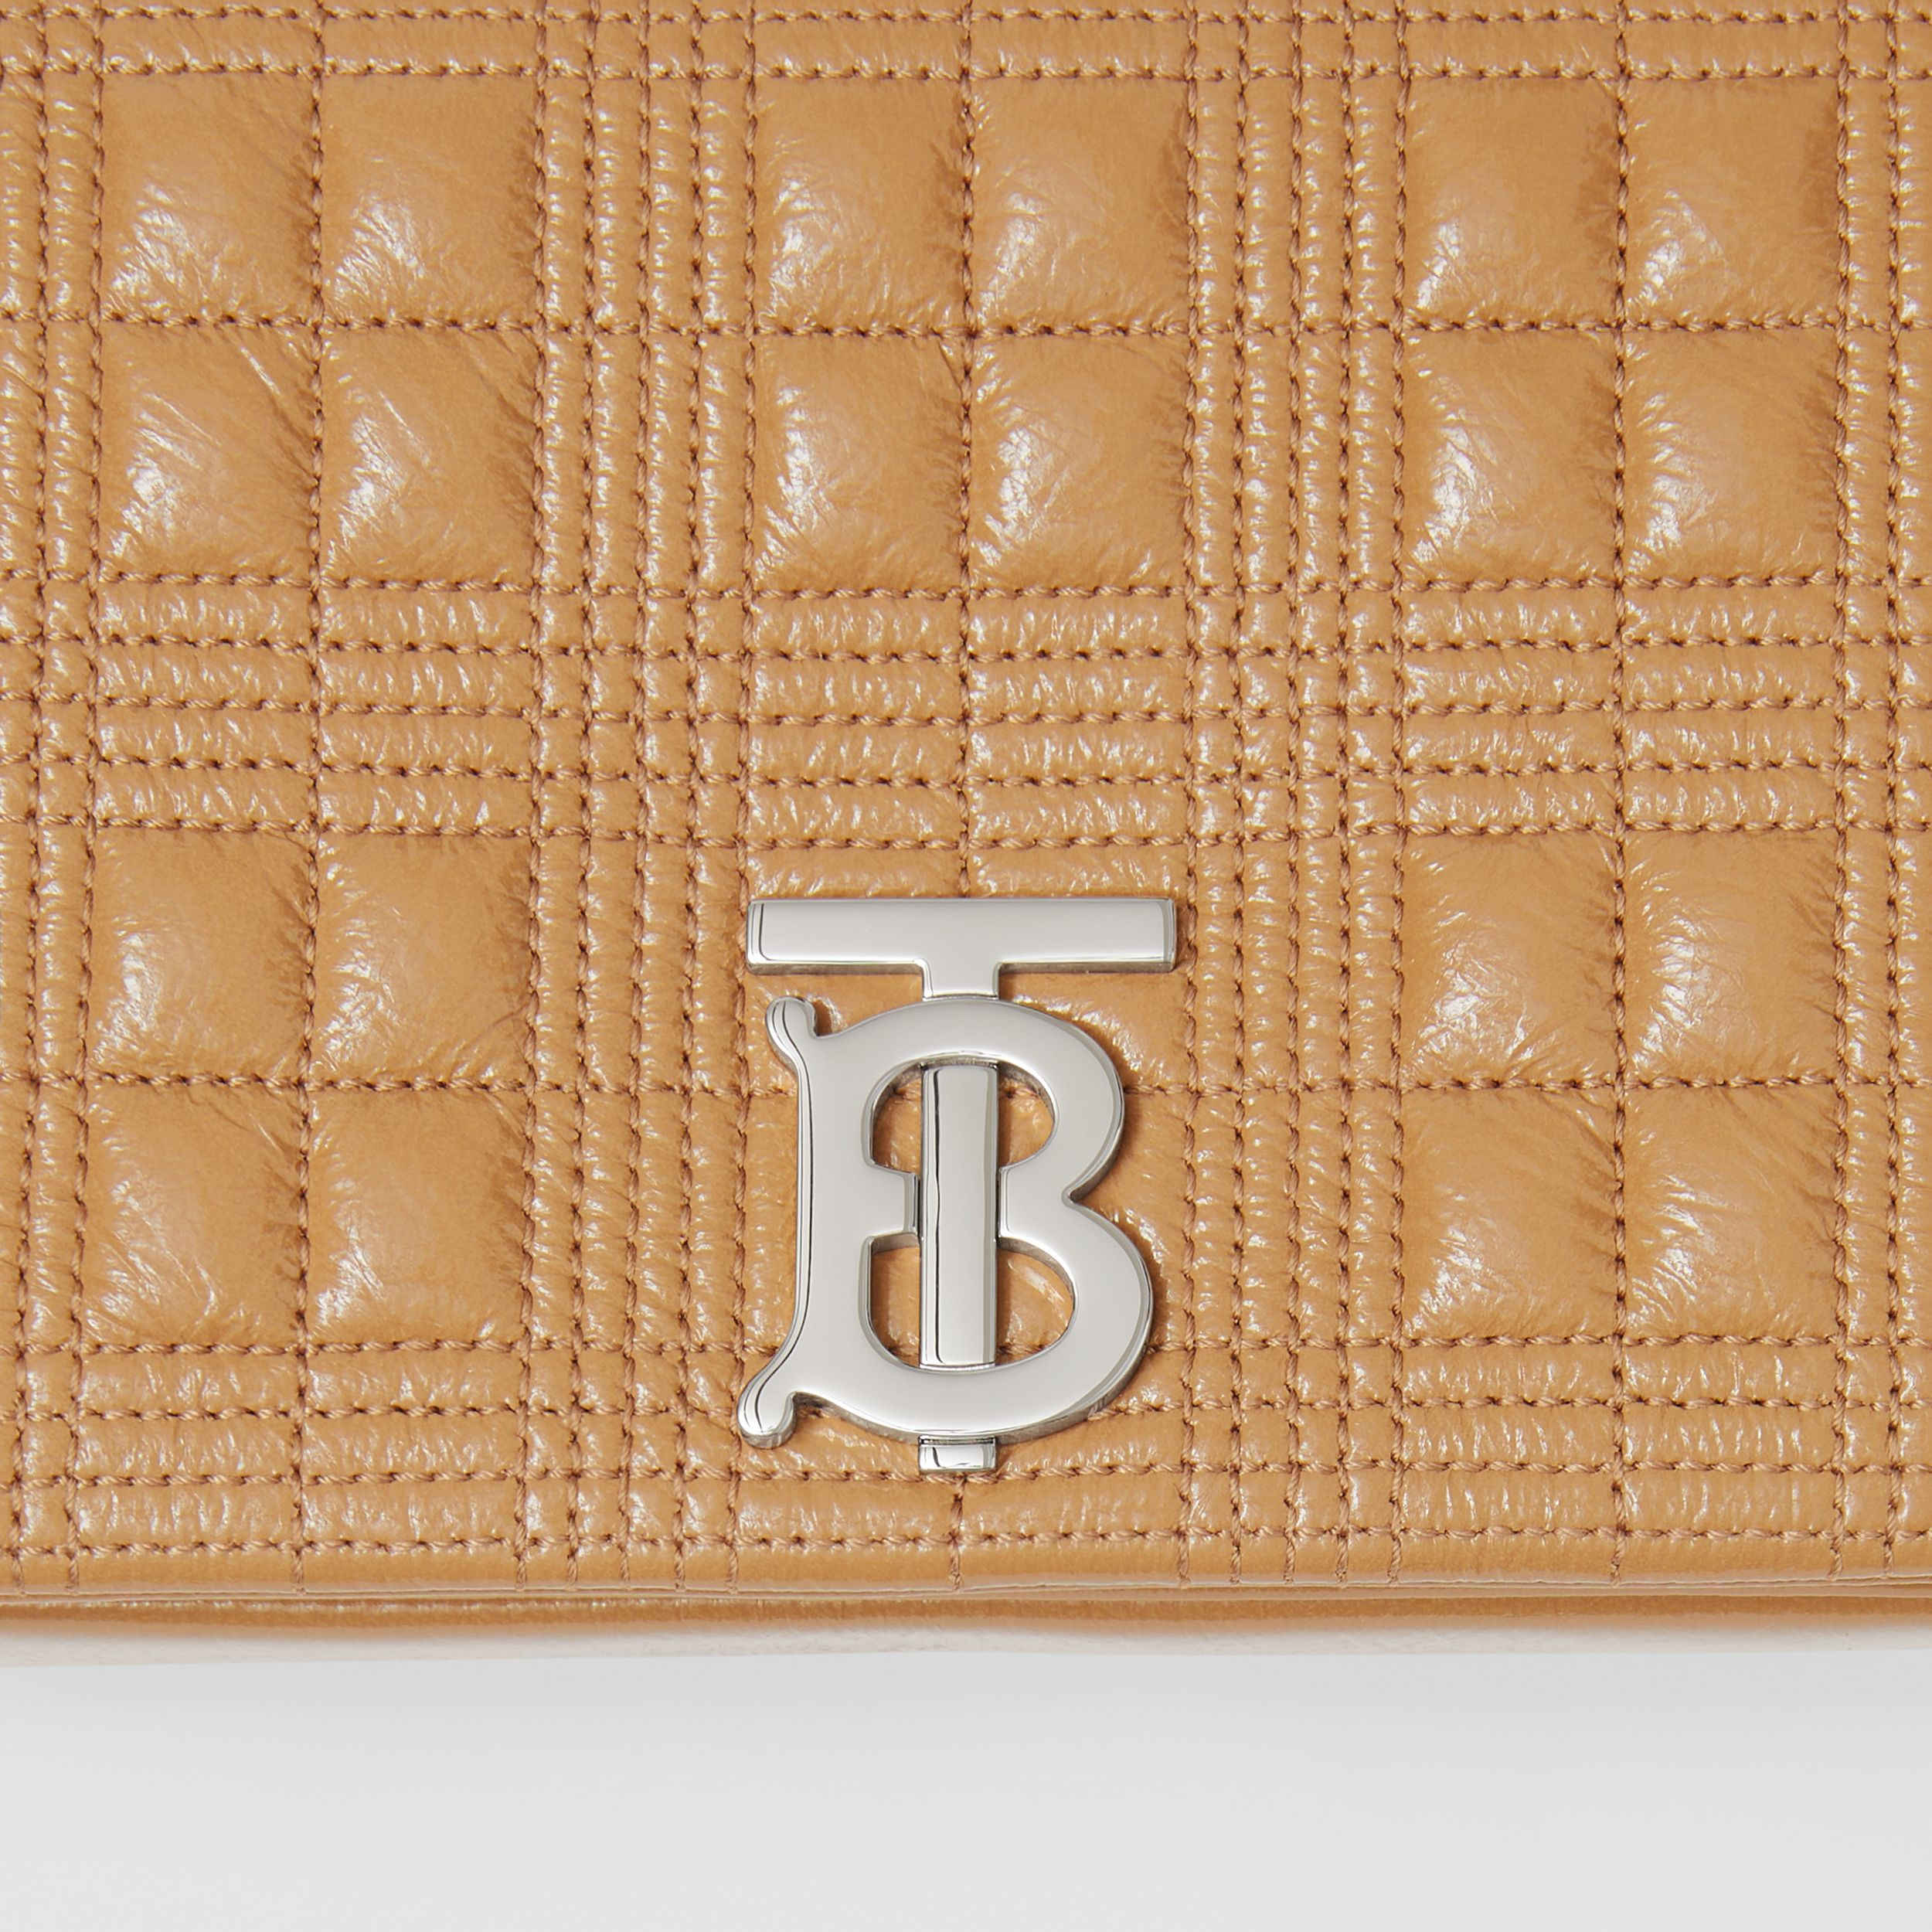 Small Quilted Lambskin Lola Bag in Camel - Women | Burberry United Kingdom - 2